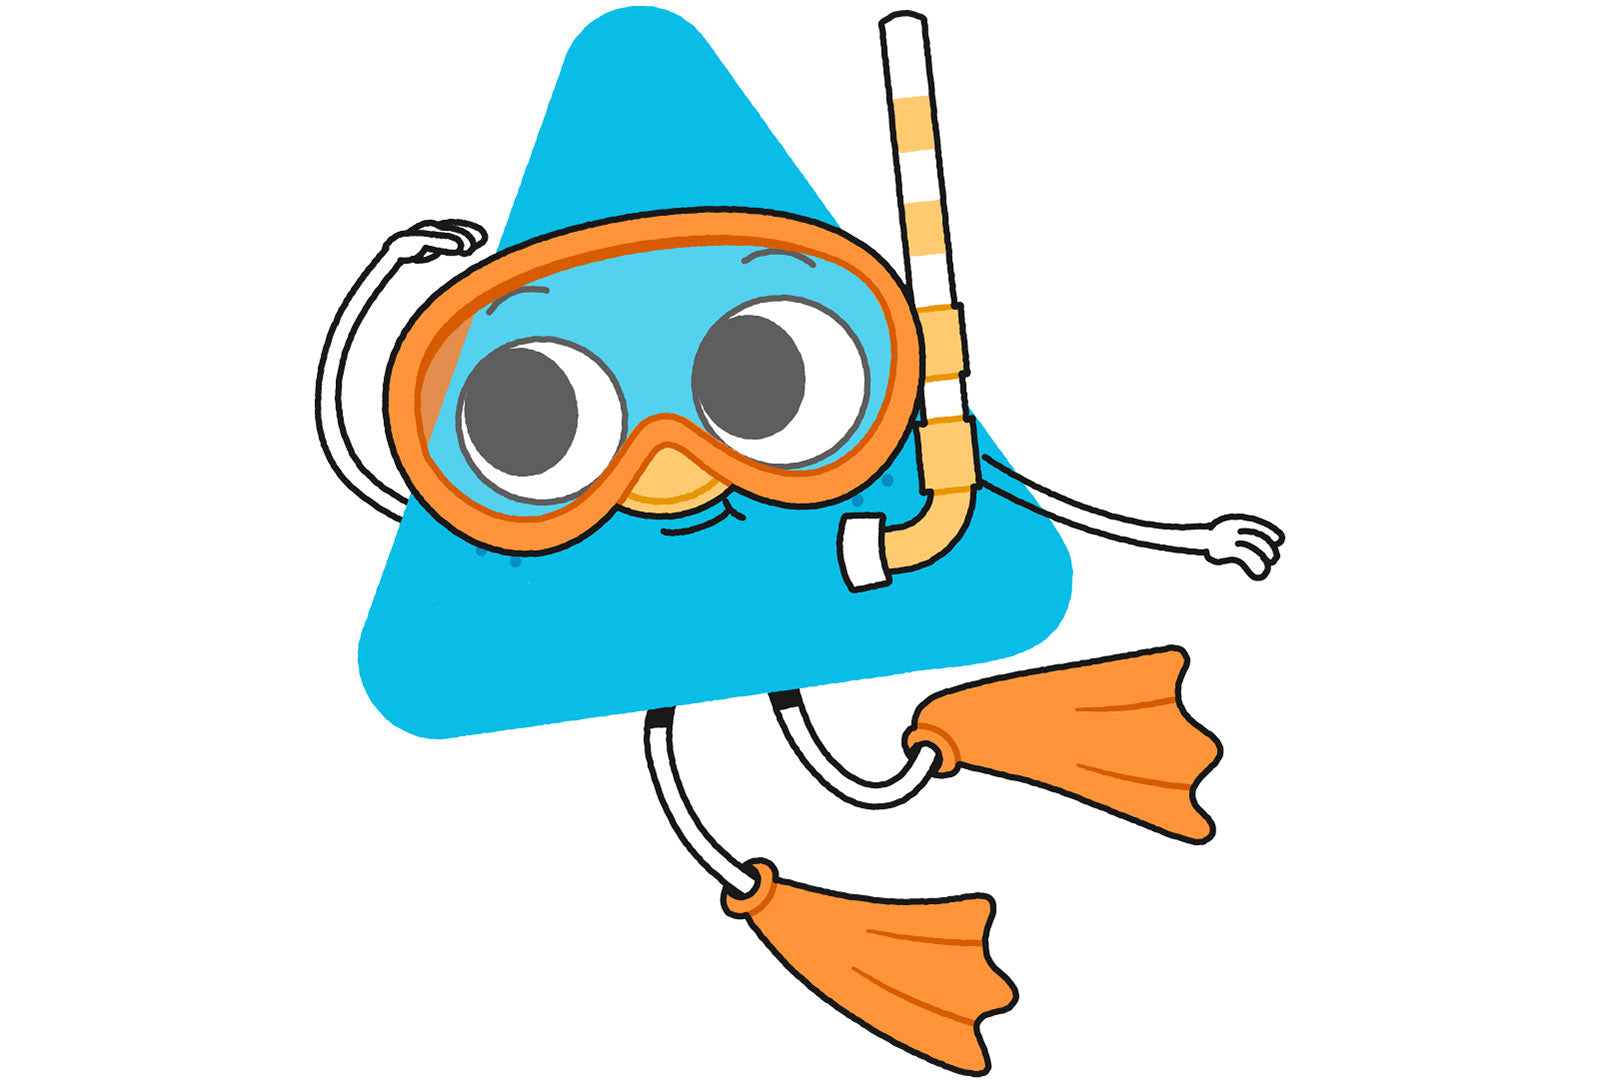 Illustrated Nugget character in snorkel outfit